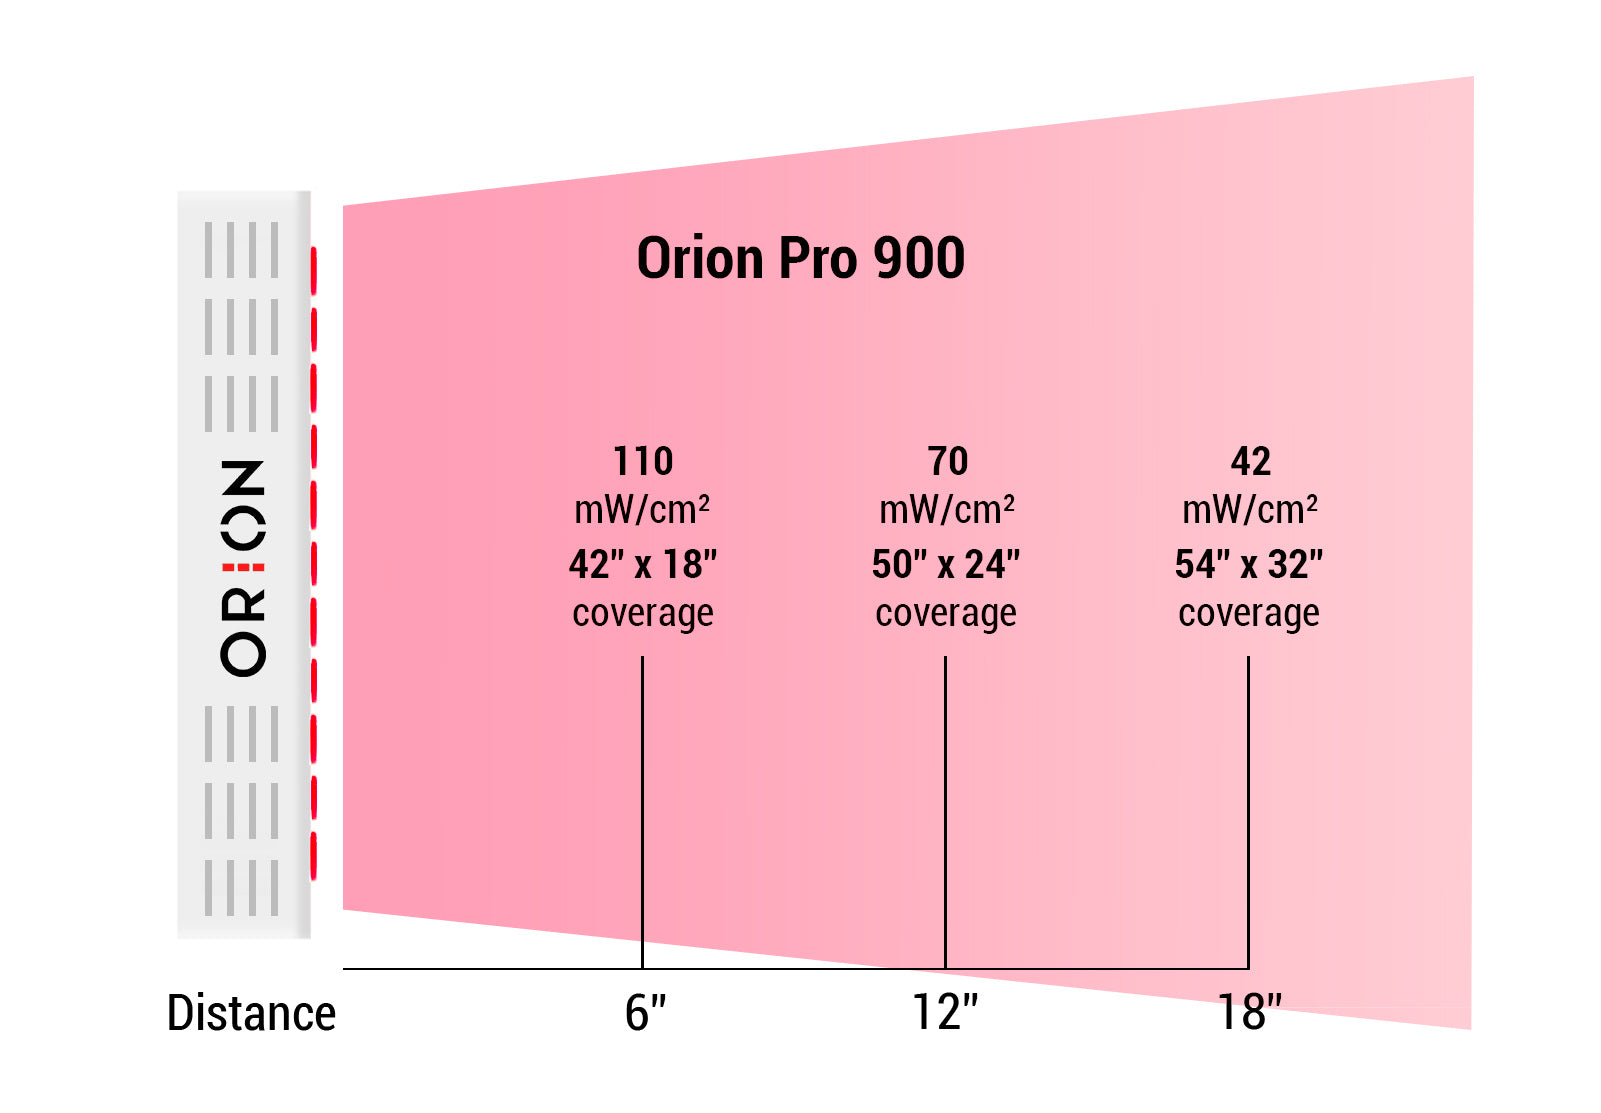 Orion Pro 900 Irradiance Levels | Orion Red Light Therapy